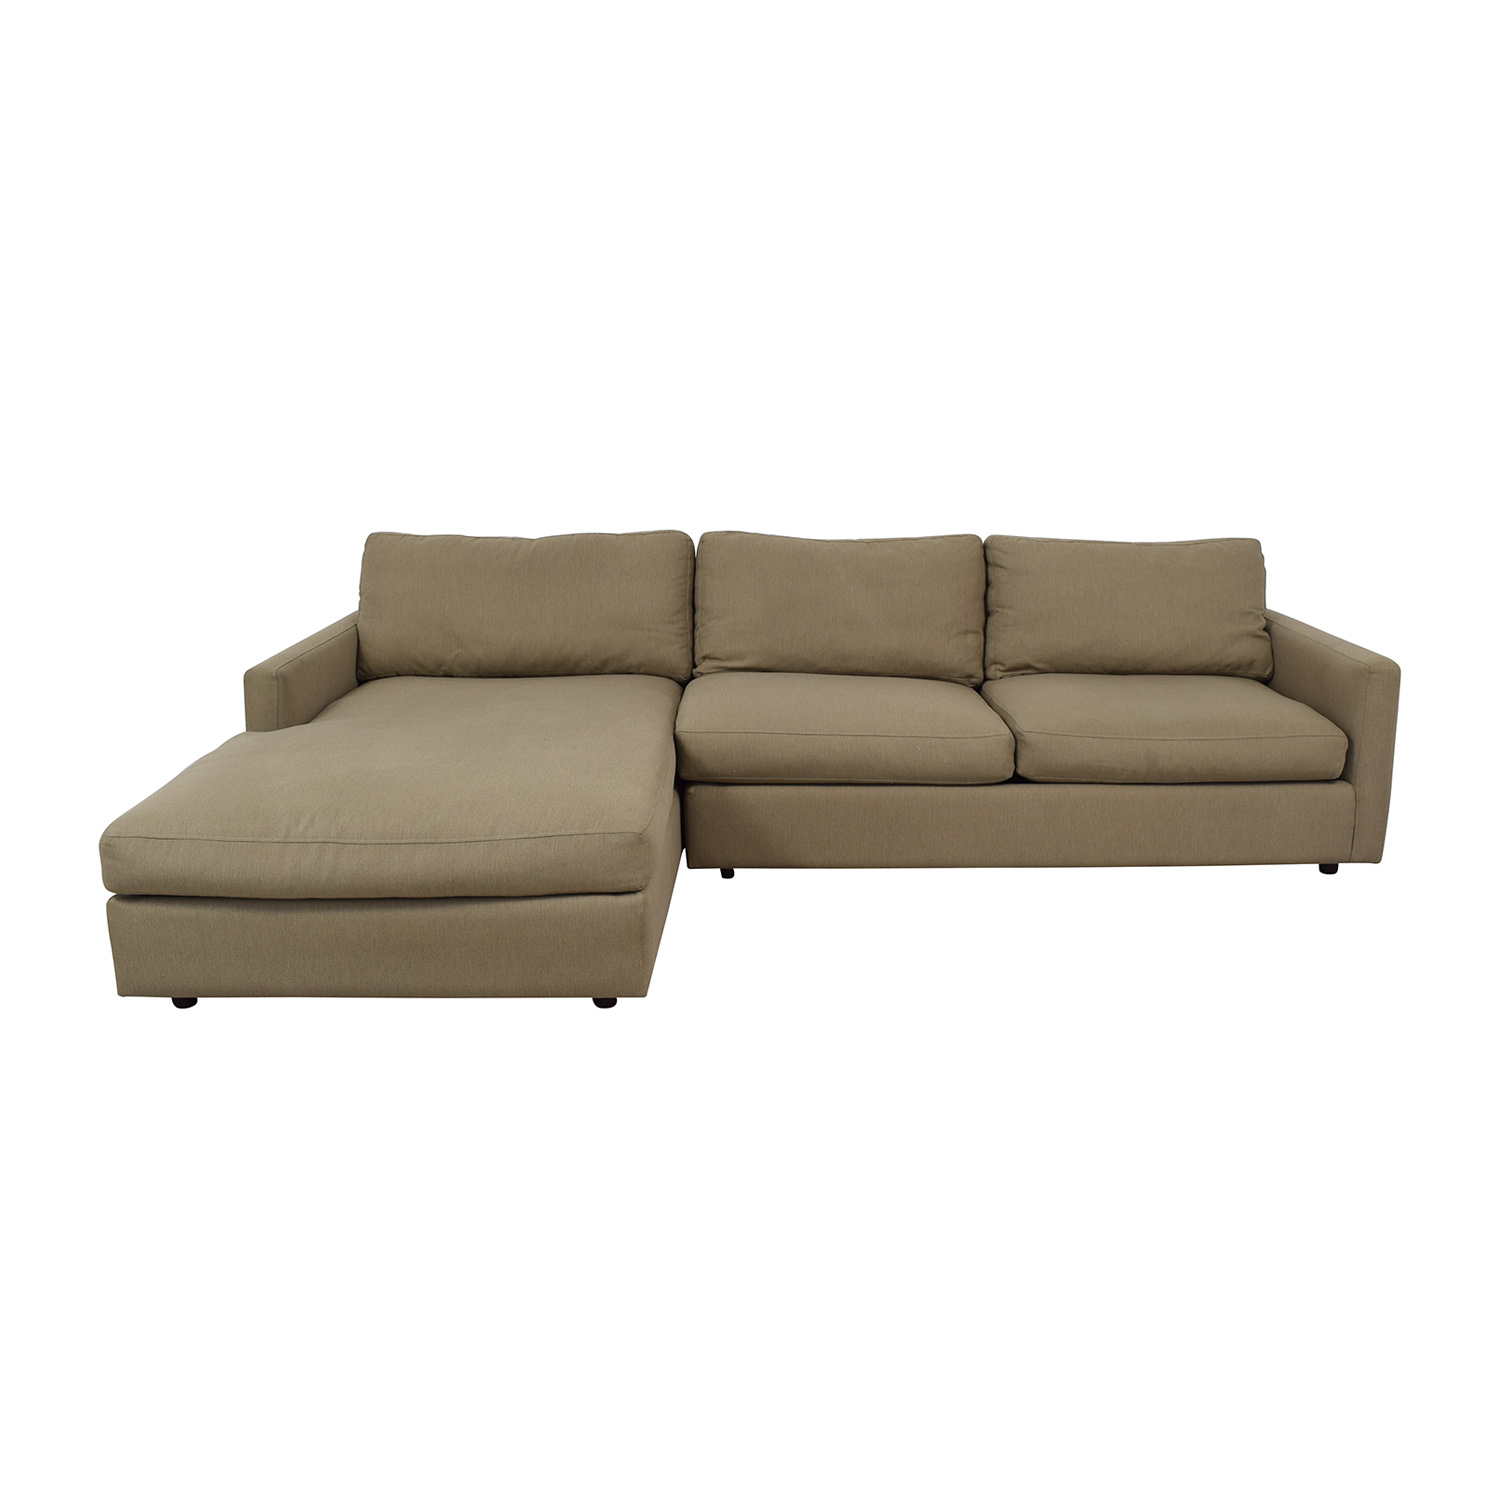 Room & Board Room & Board Easton Sofa with Left-Arm Chaise price